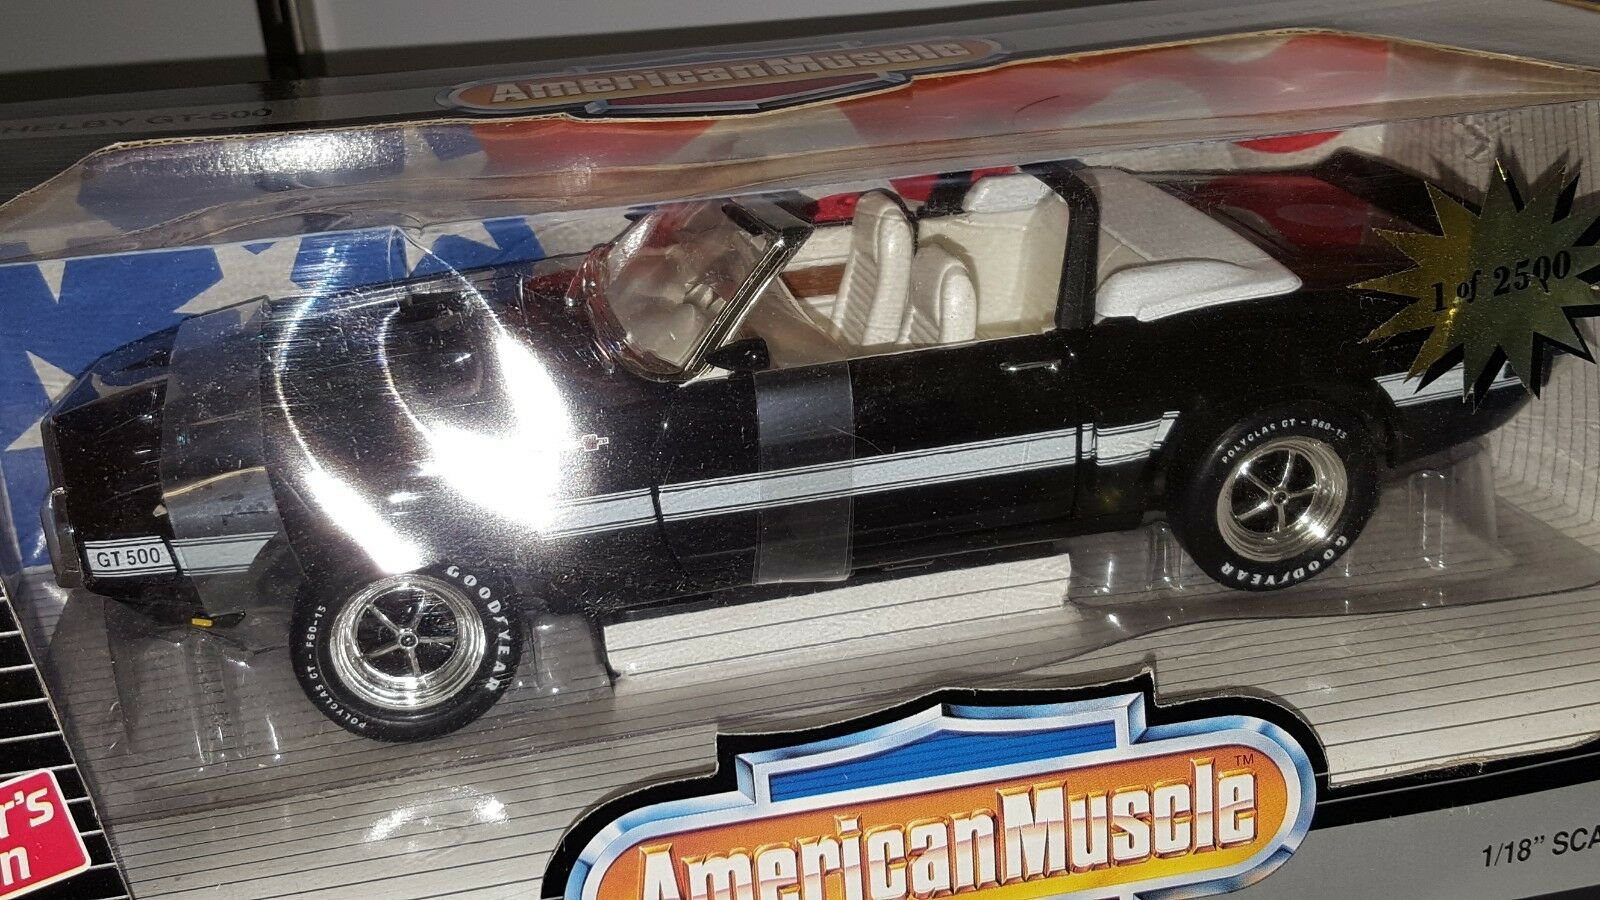 1 18 Ertl American Muscle 1969 Ford Shelby GT-500 Converdeible Negro Od